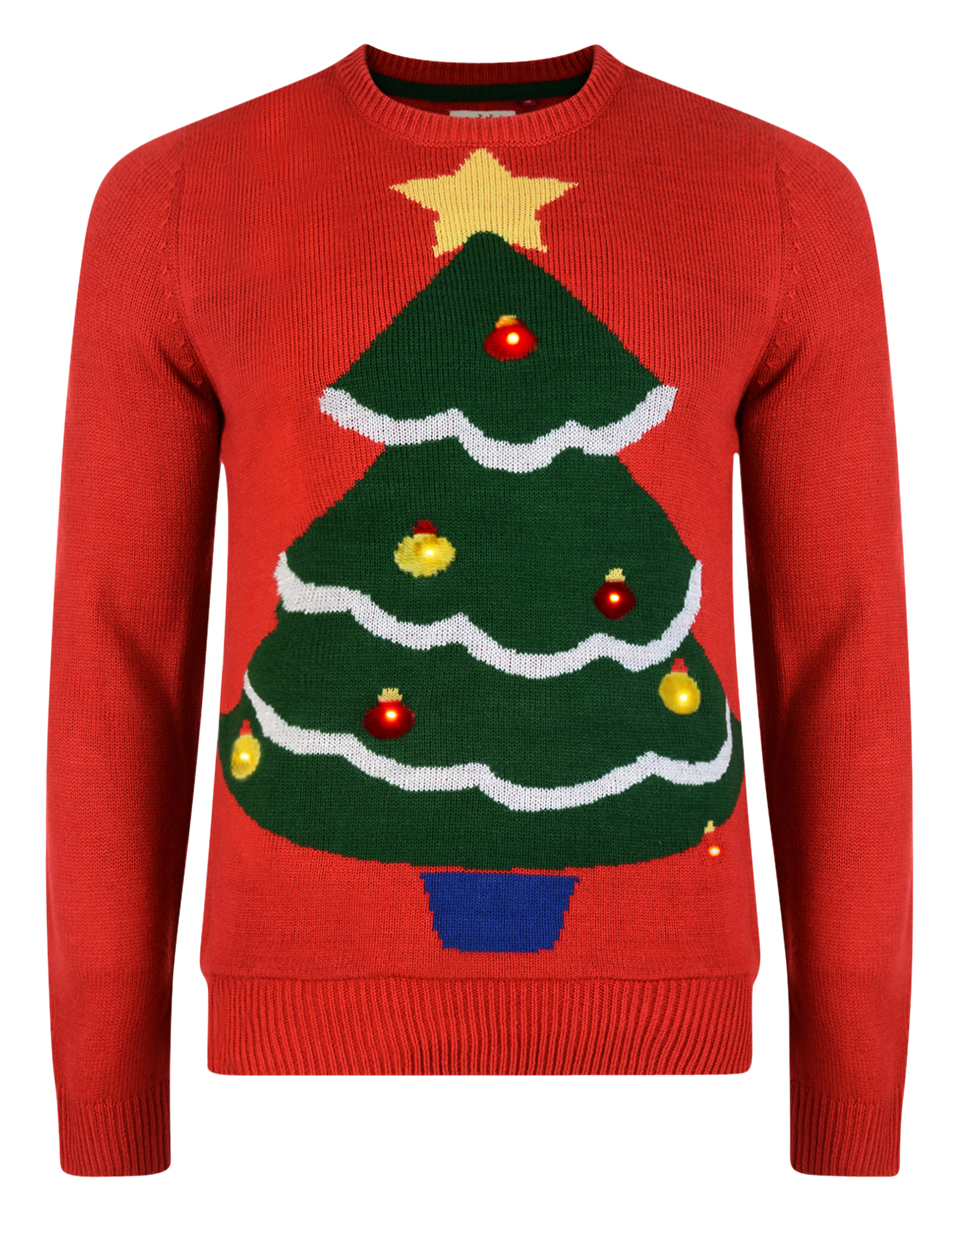 Novelty Christmas Jumpers Knitting Pattern : Christmas jumper novelty led light up knit sweater red